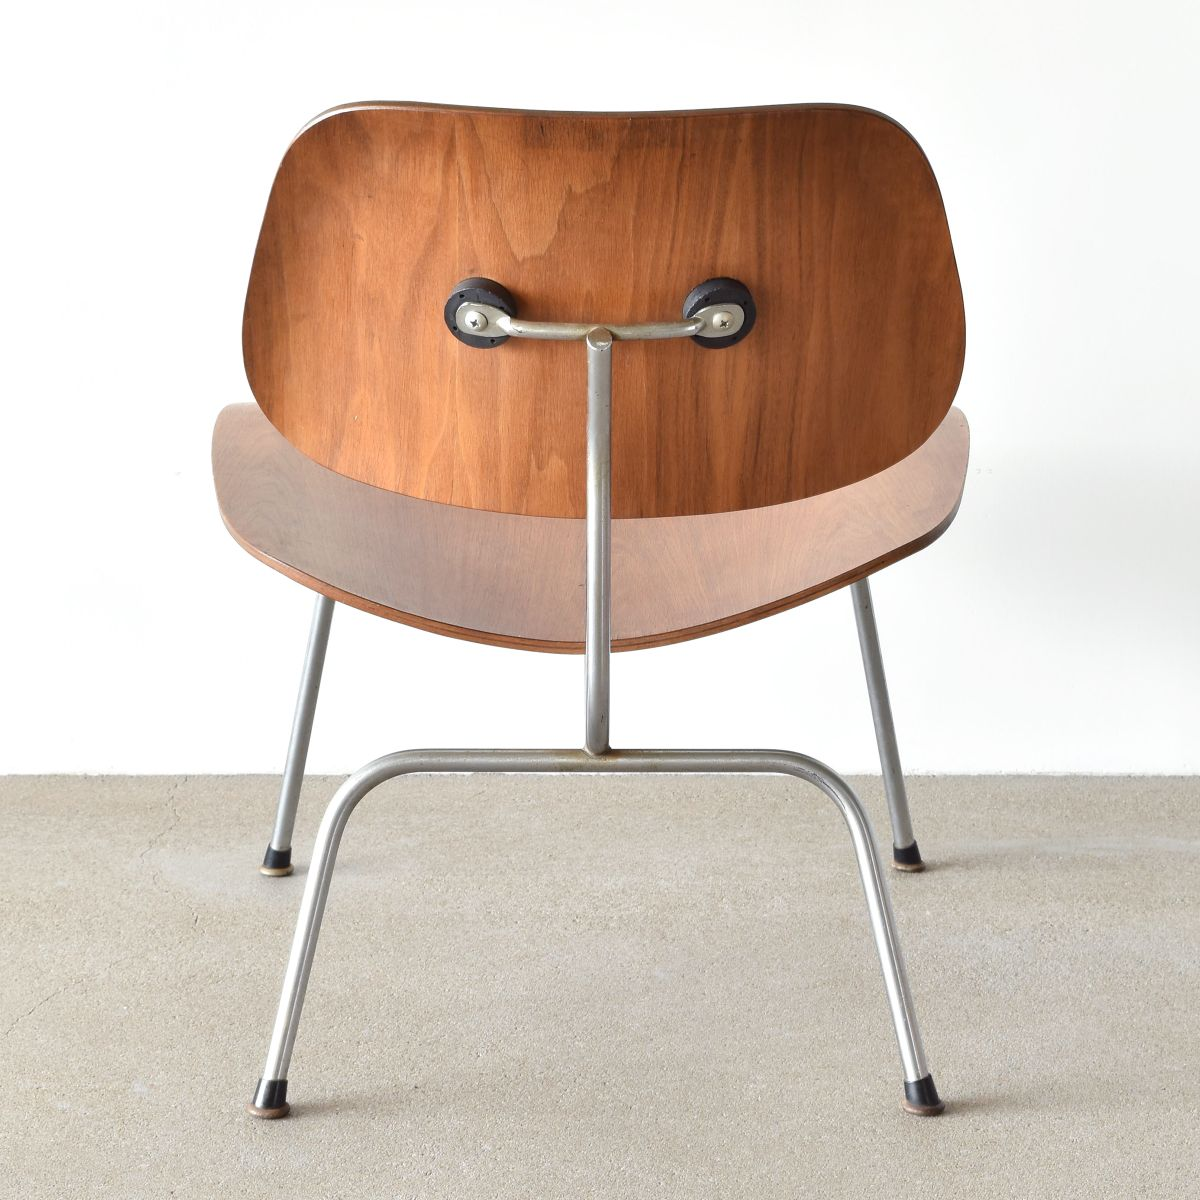 lcm chair by charles and ray eames for herman miller 1954. Black Bedroom Furniture Sets. Home Design Ideas